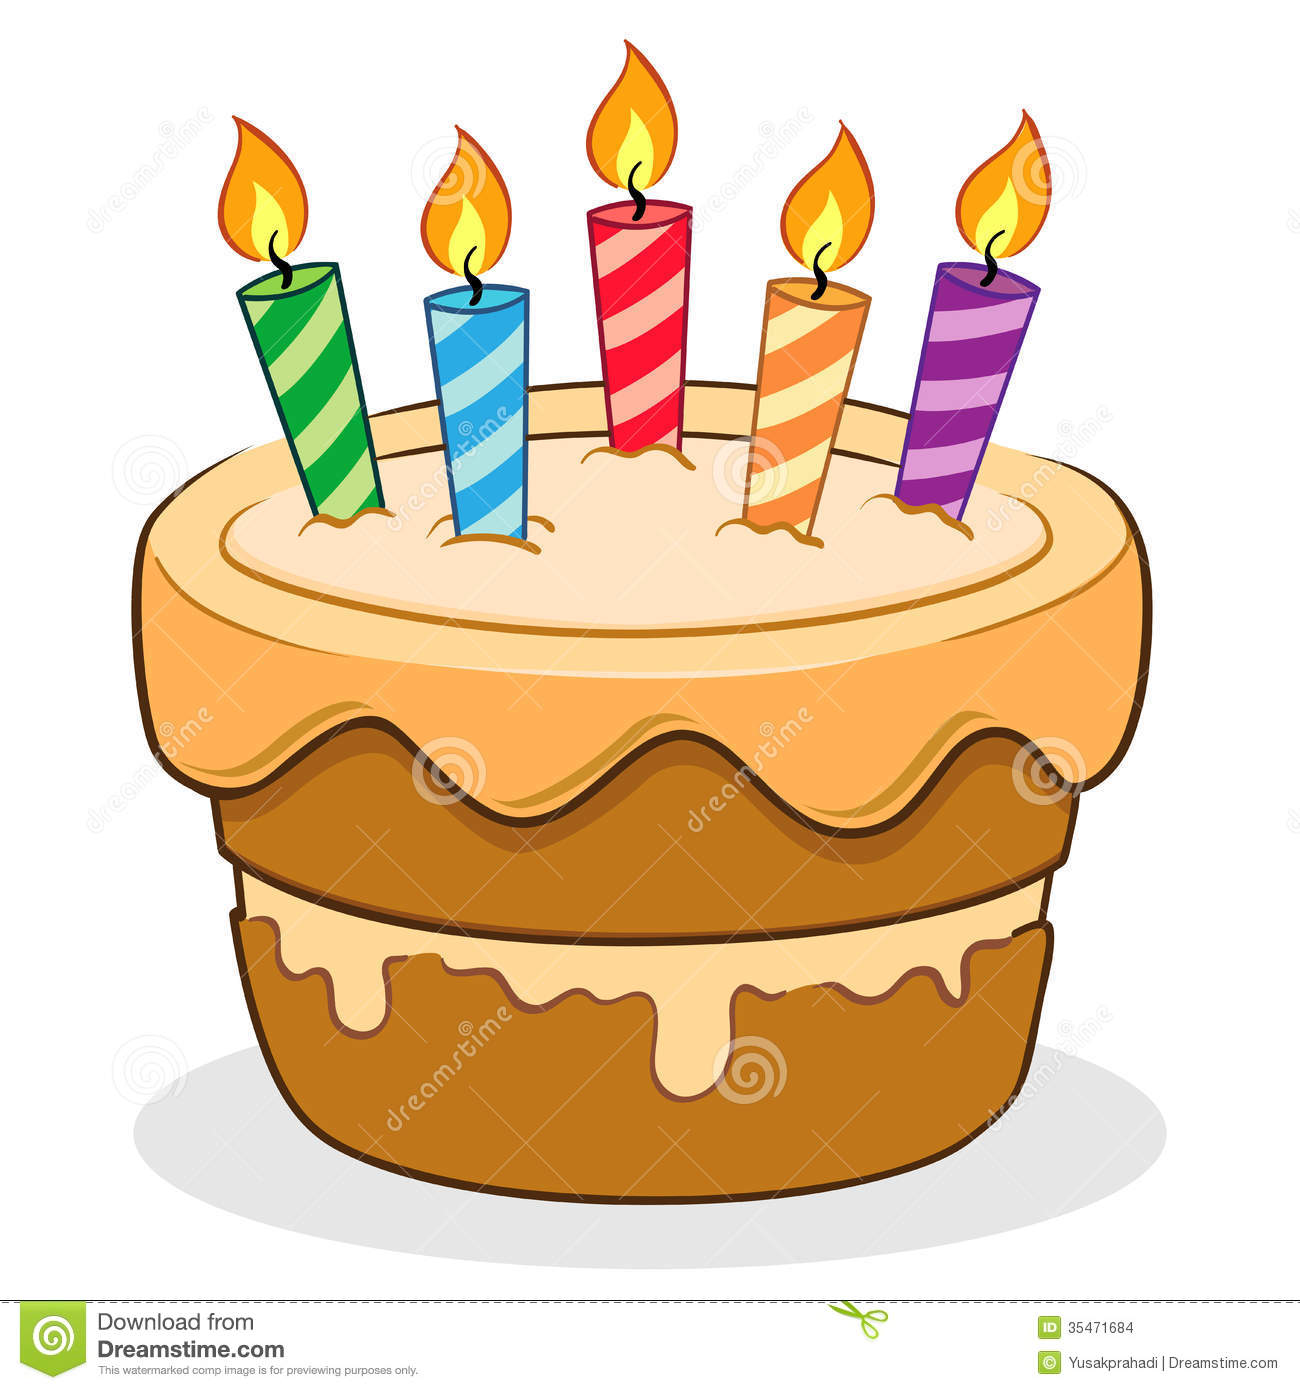 Cake Pictures Vector : Birthday Cake Stock Images - Image: 35471684